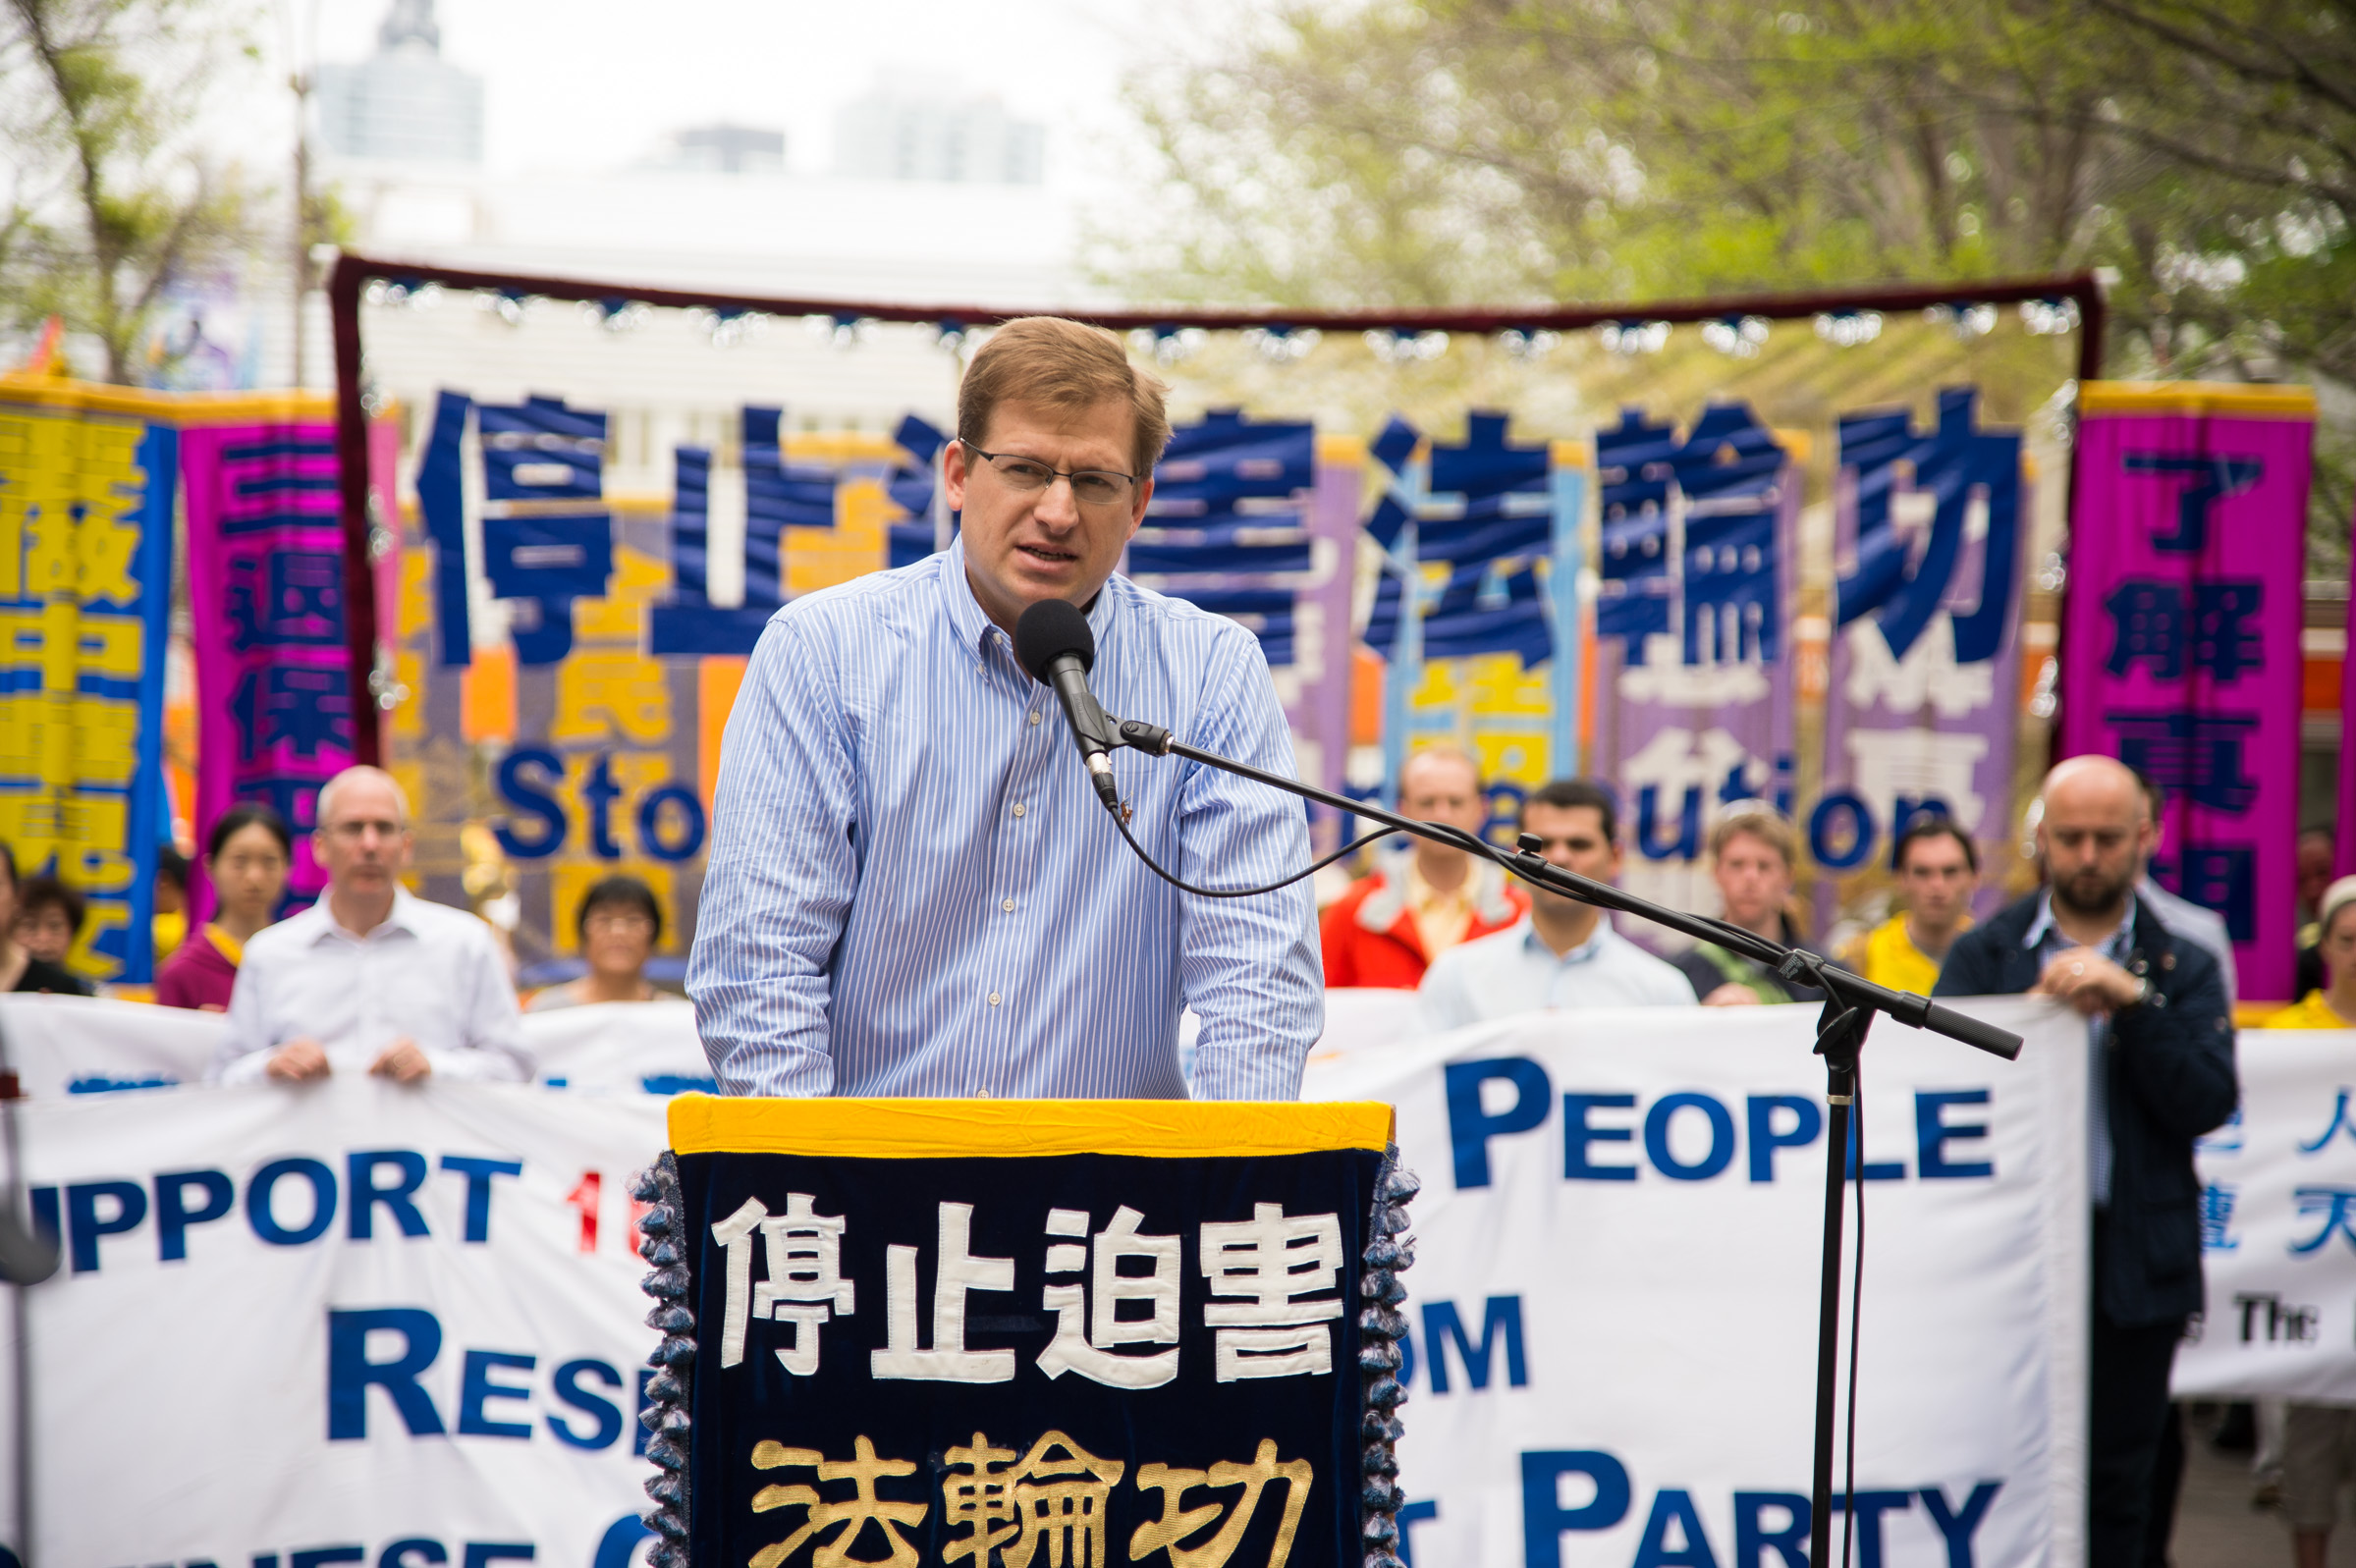 Levi Browde, a partner with a Manhattan-based software company and the executive director of the Falun Dafa Information Center, speaks at a Falun Gong rally on May 14, 2014. (Dai Bing/The Epoch Times)